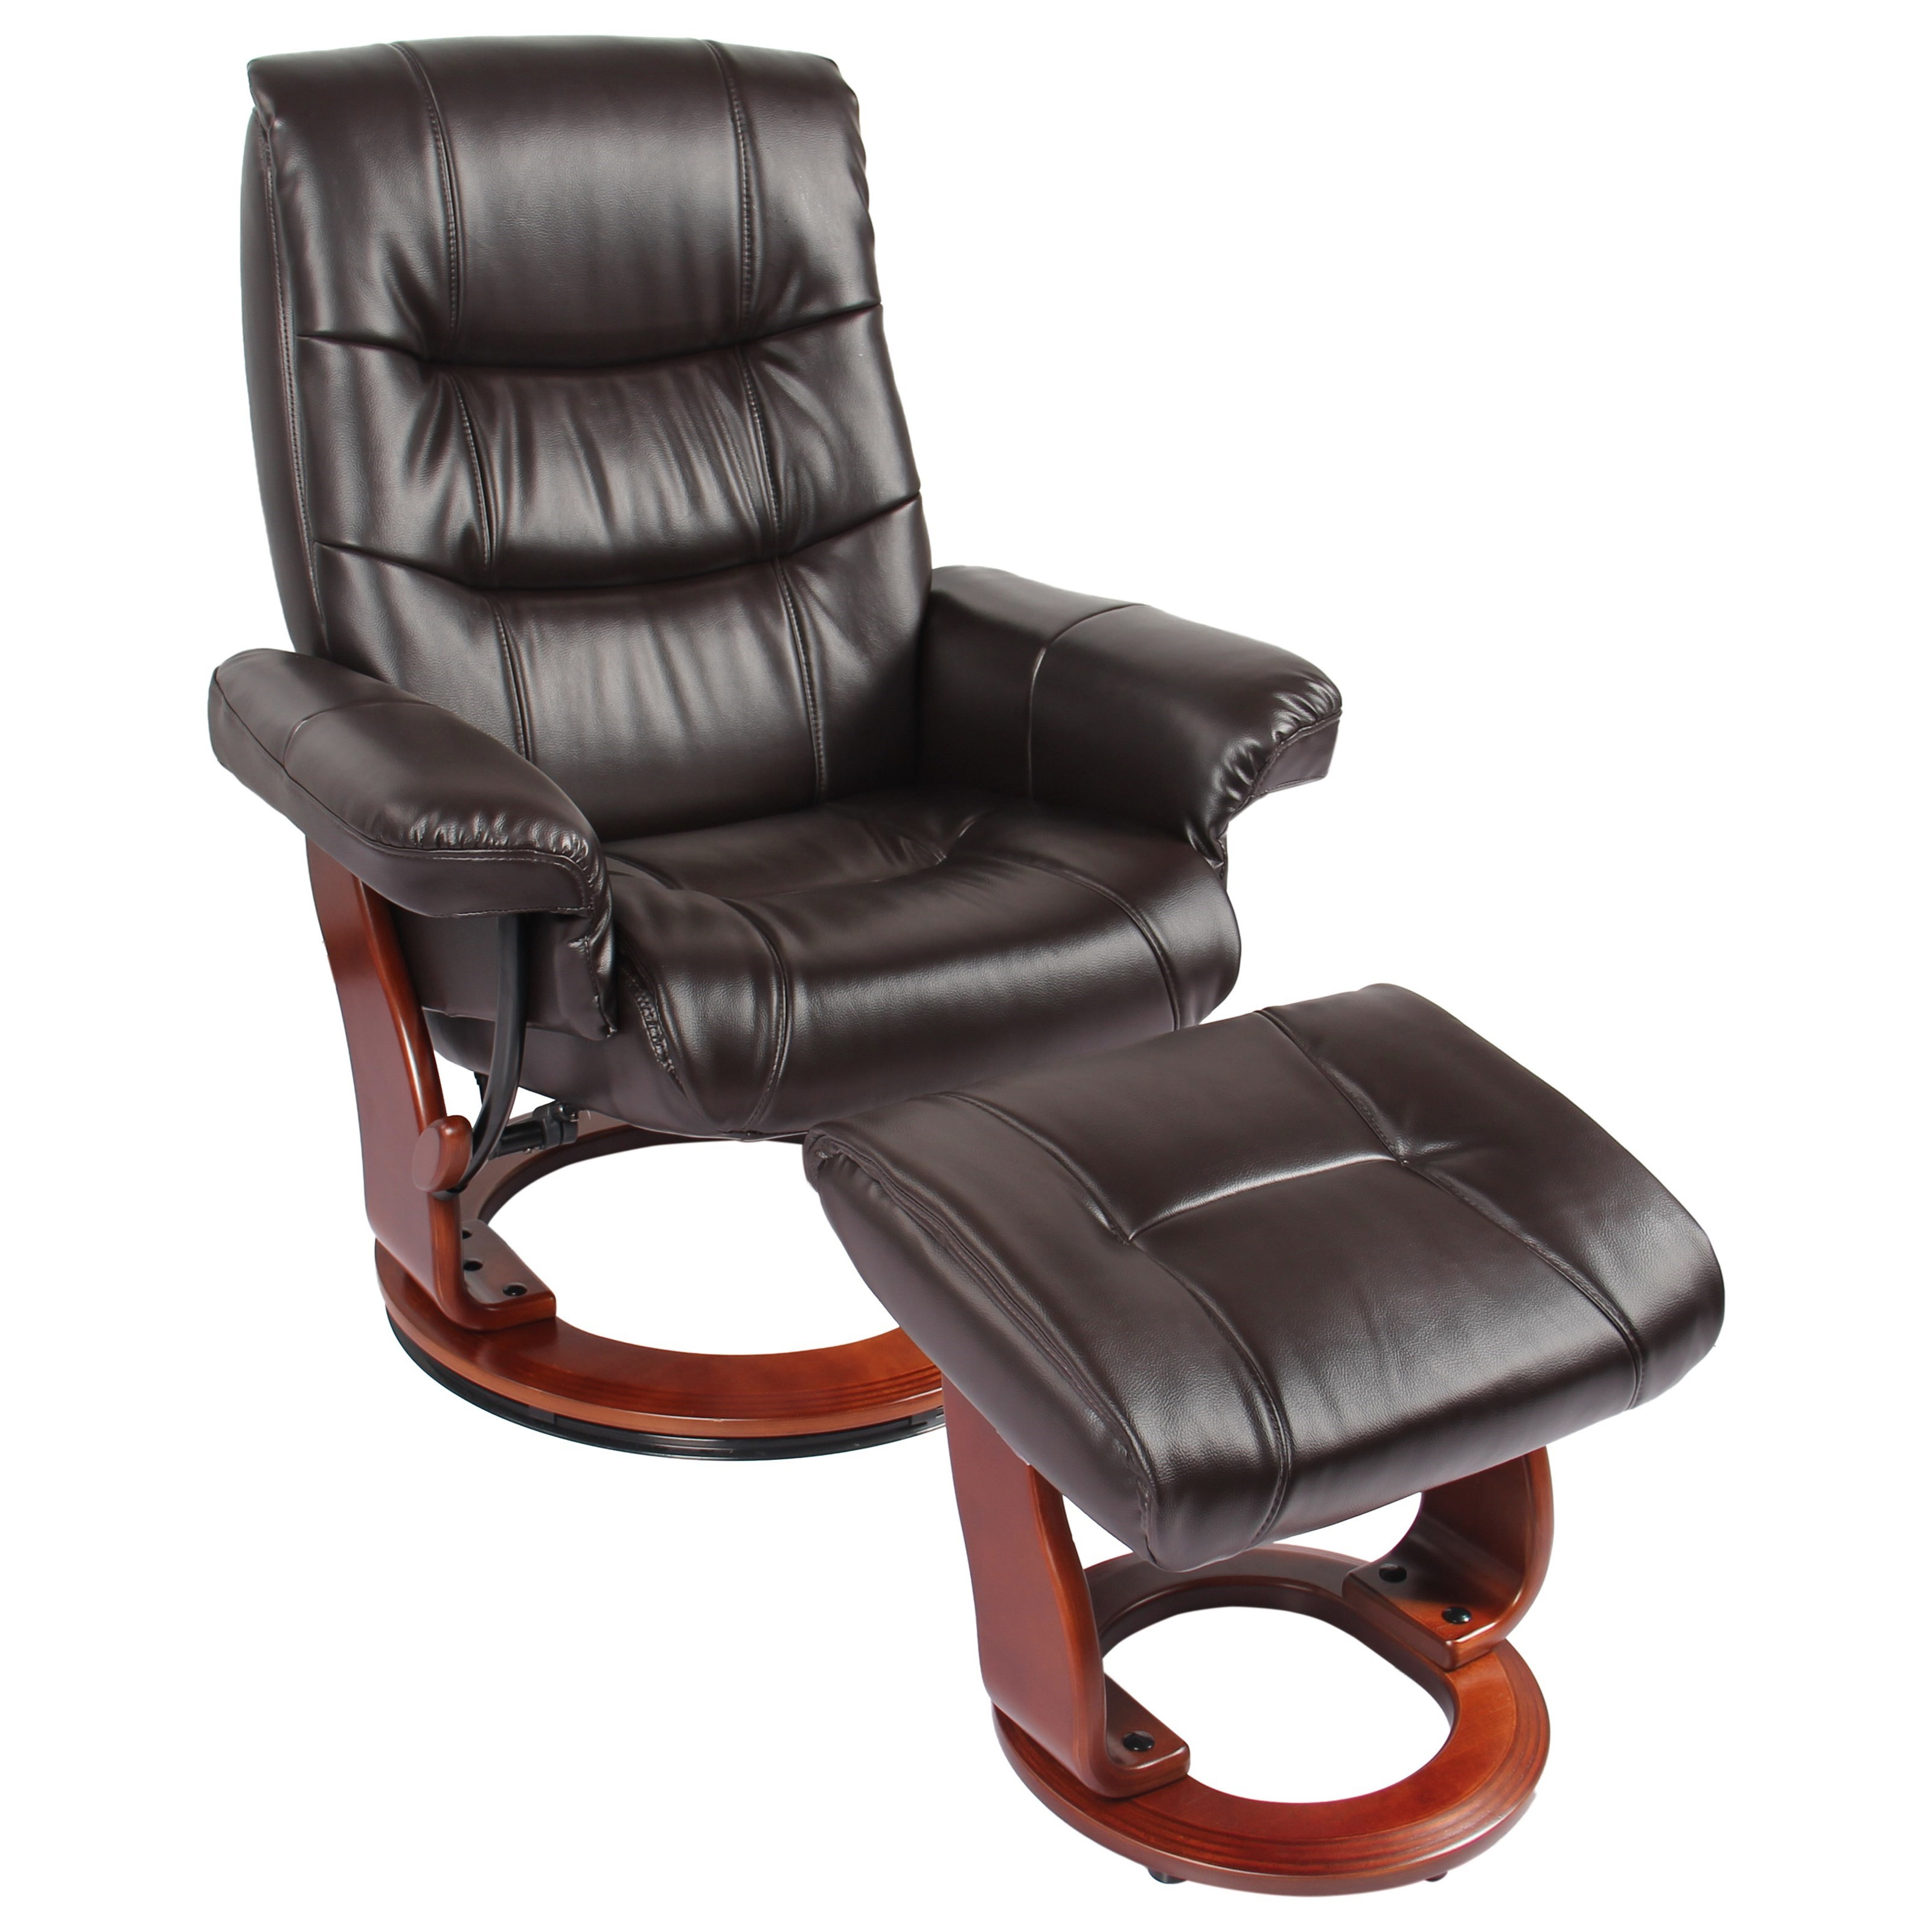 Rosa II Reclining Chair and Ottoman by Benchmaster at A1 Furniture & Mattress